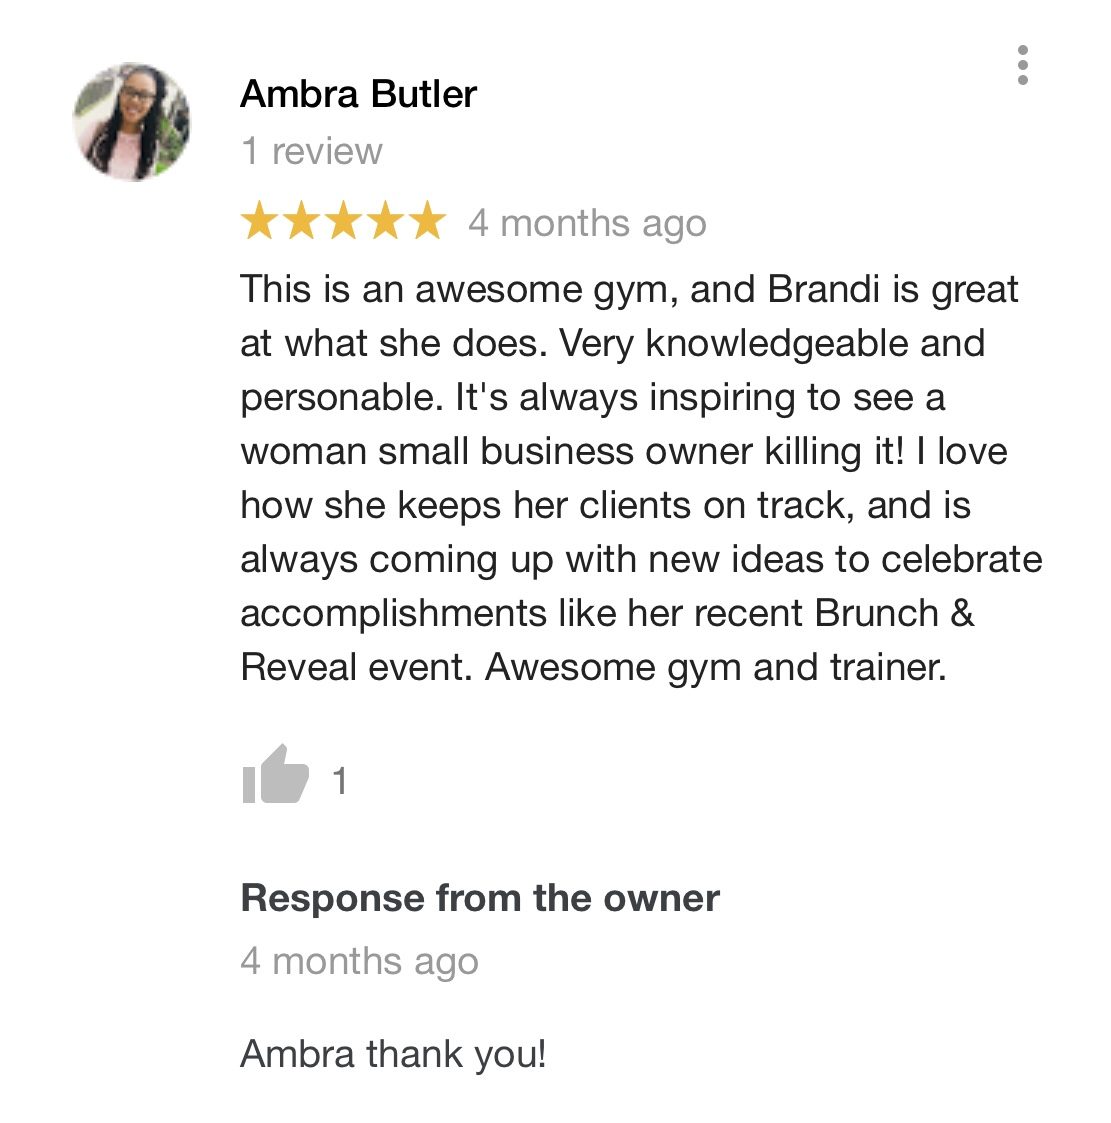 Review from Ambra